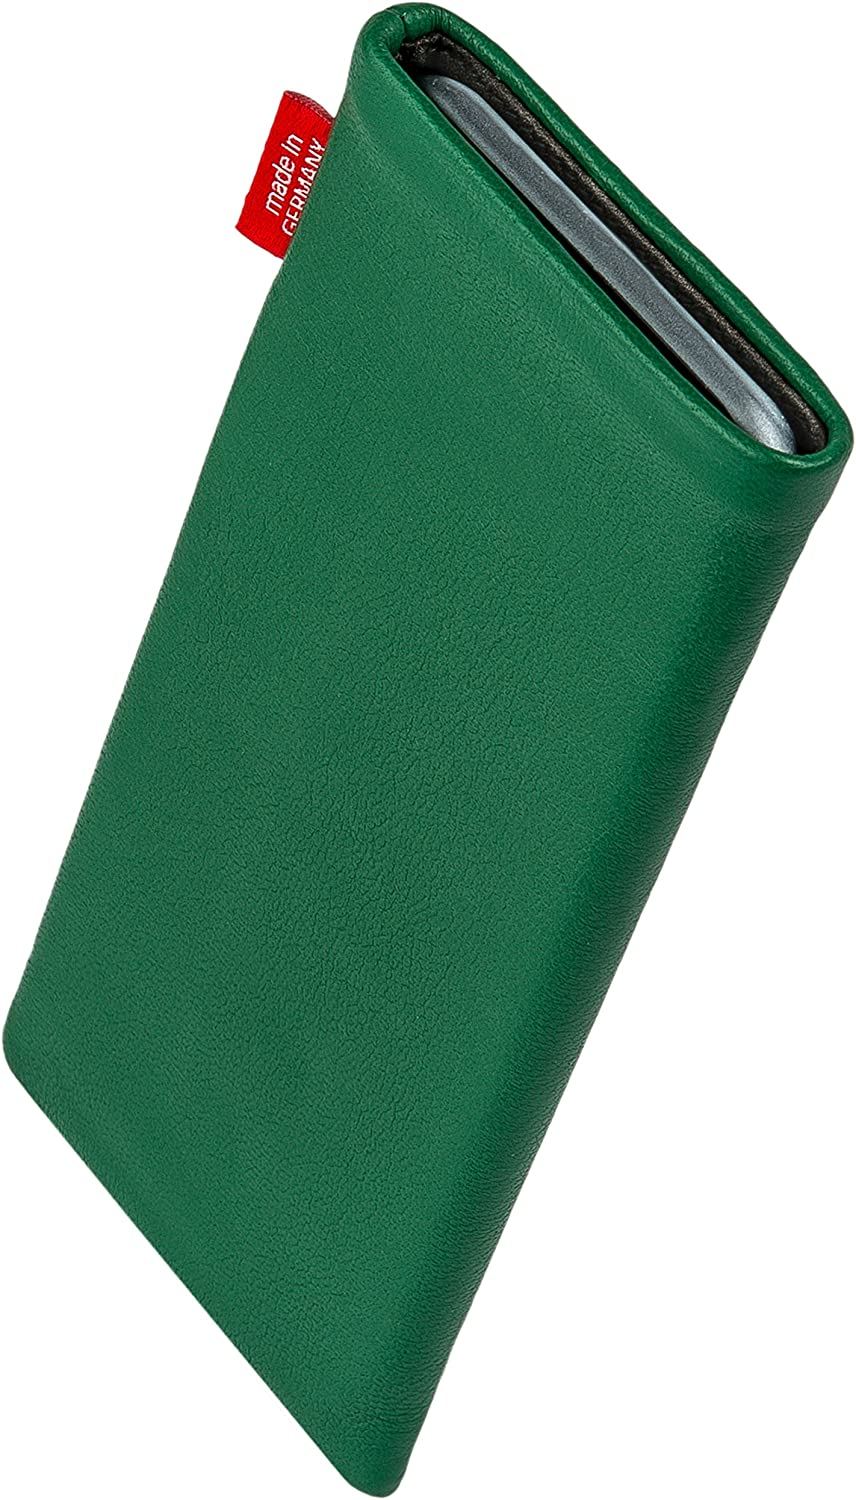 Generation fitBAG Beat Blue custom tailored sleeve for Apple iPod Touch 6G 2015 6 Made in Germany Fine nappa leather pouch case cover with MicroFibre lining for display cleaning